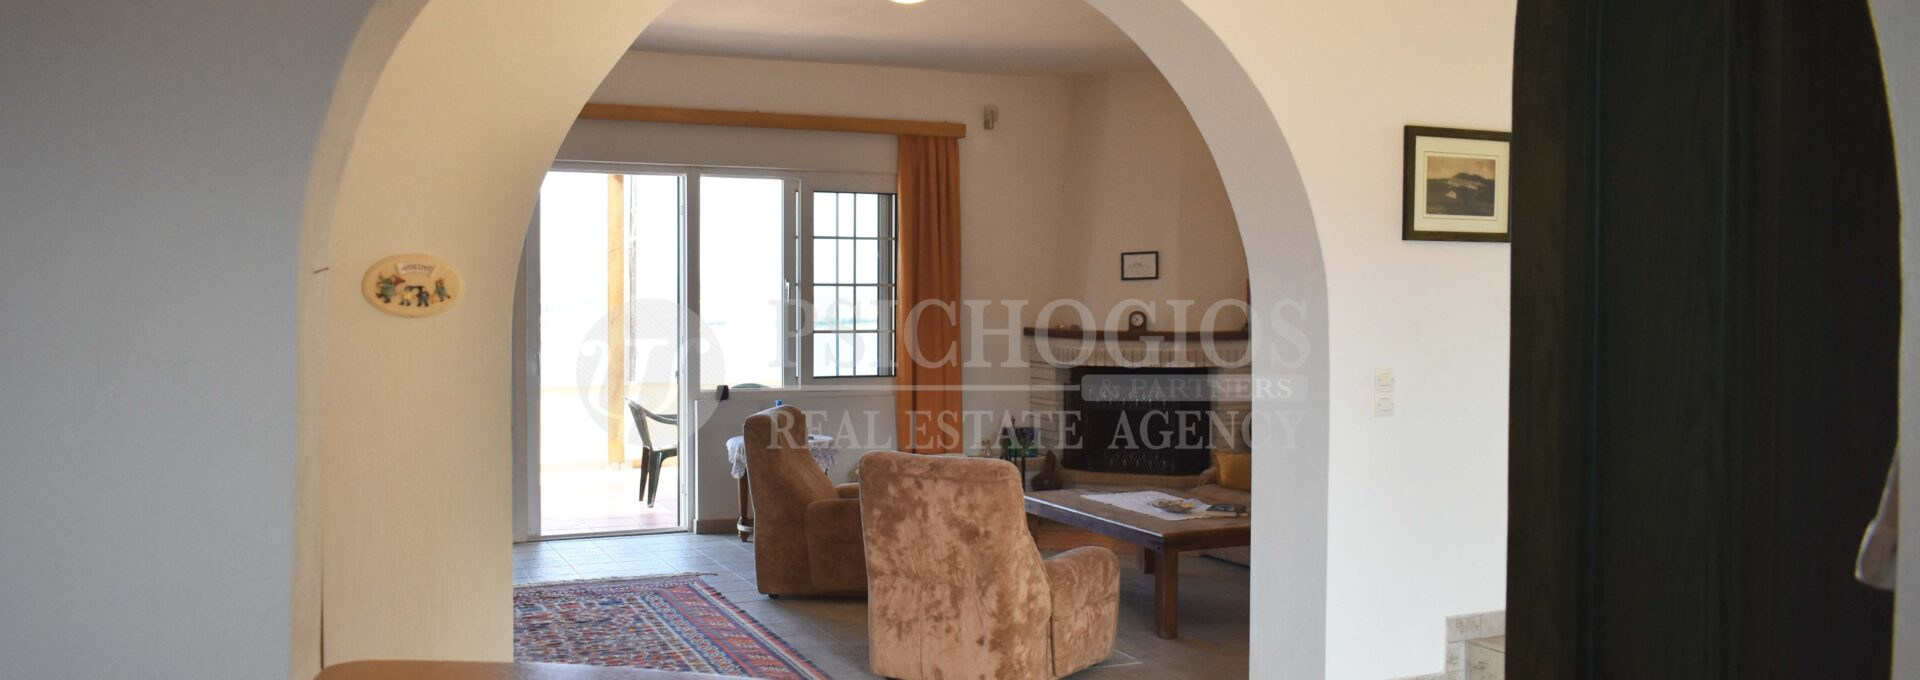 for_sale_house_223_square_meters_plot_730_square_meters_view_to_the_sea_ermioni_greece (41)